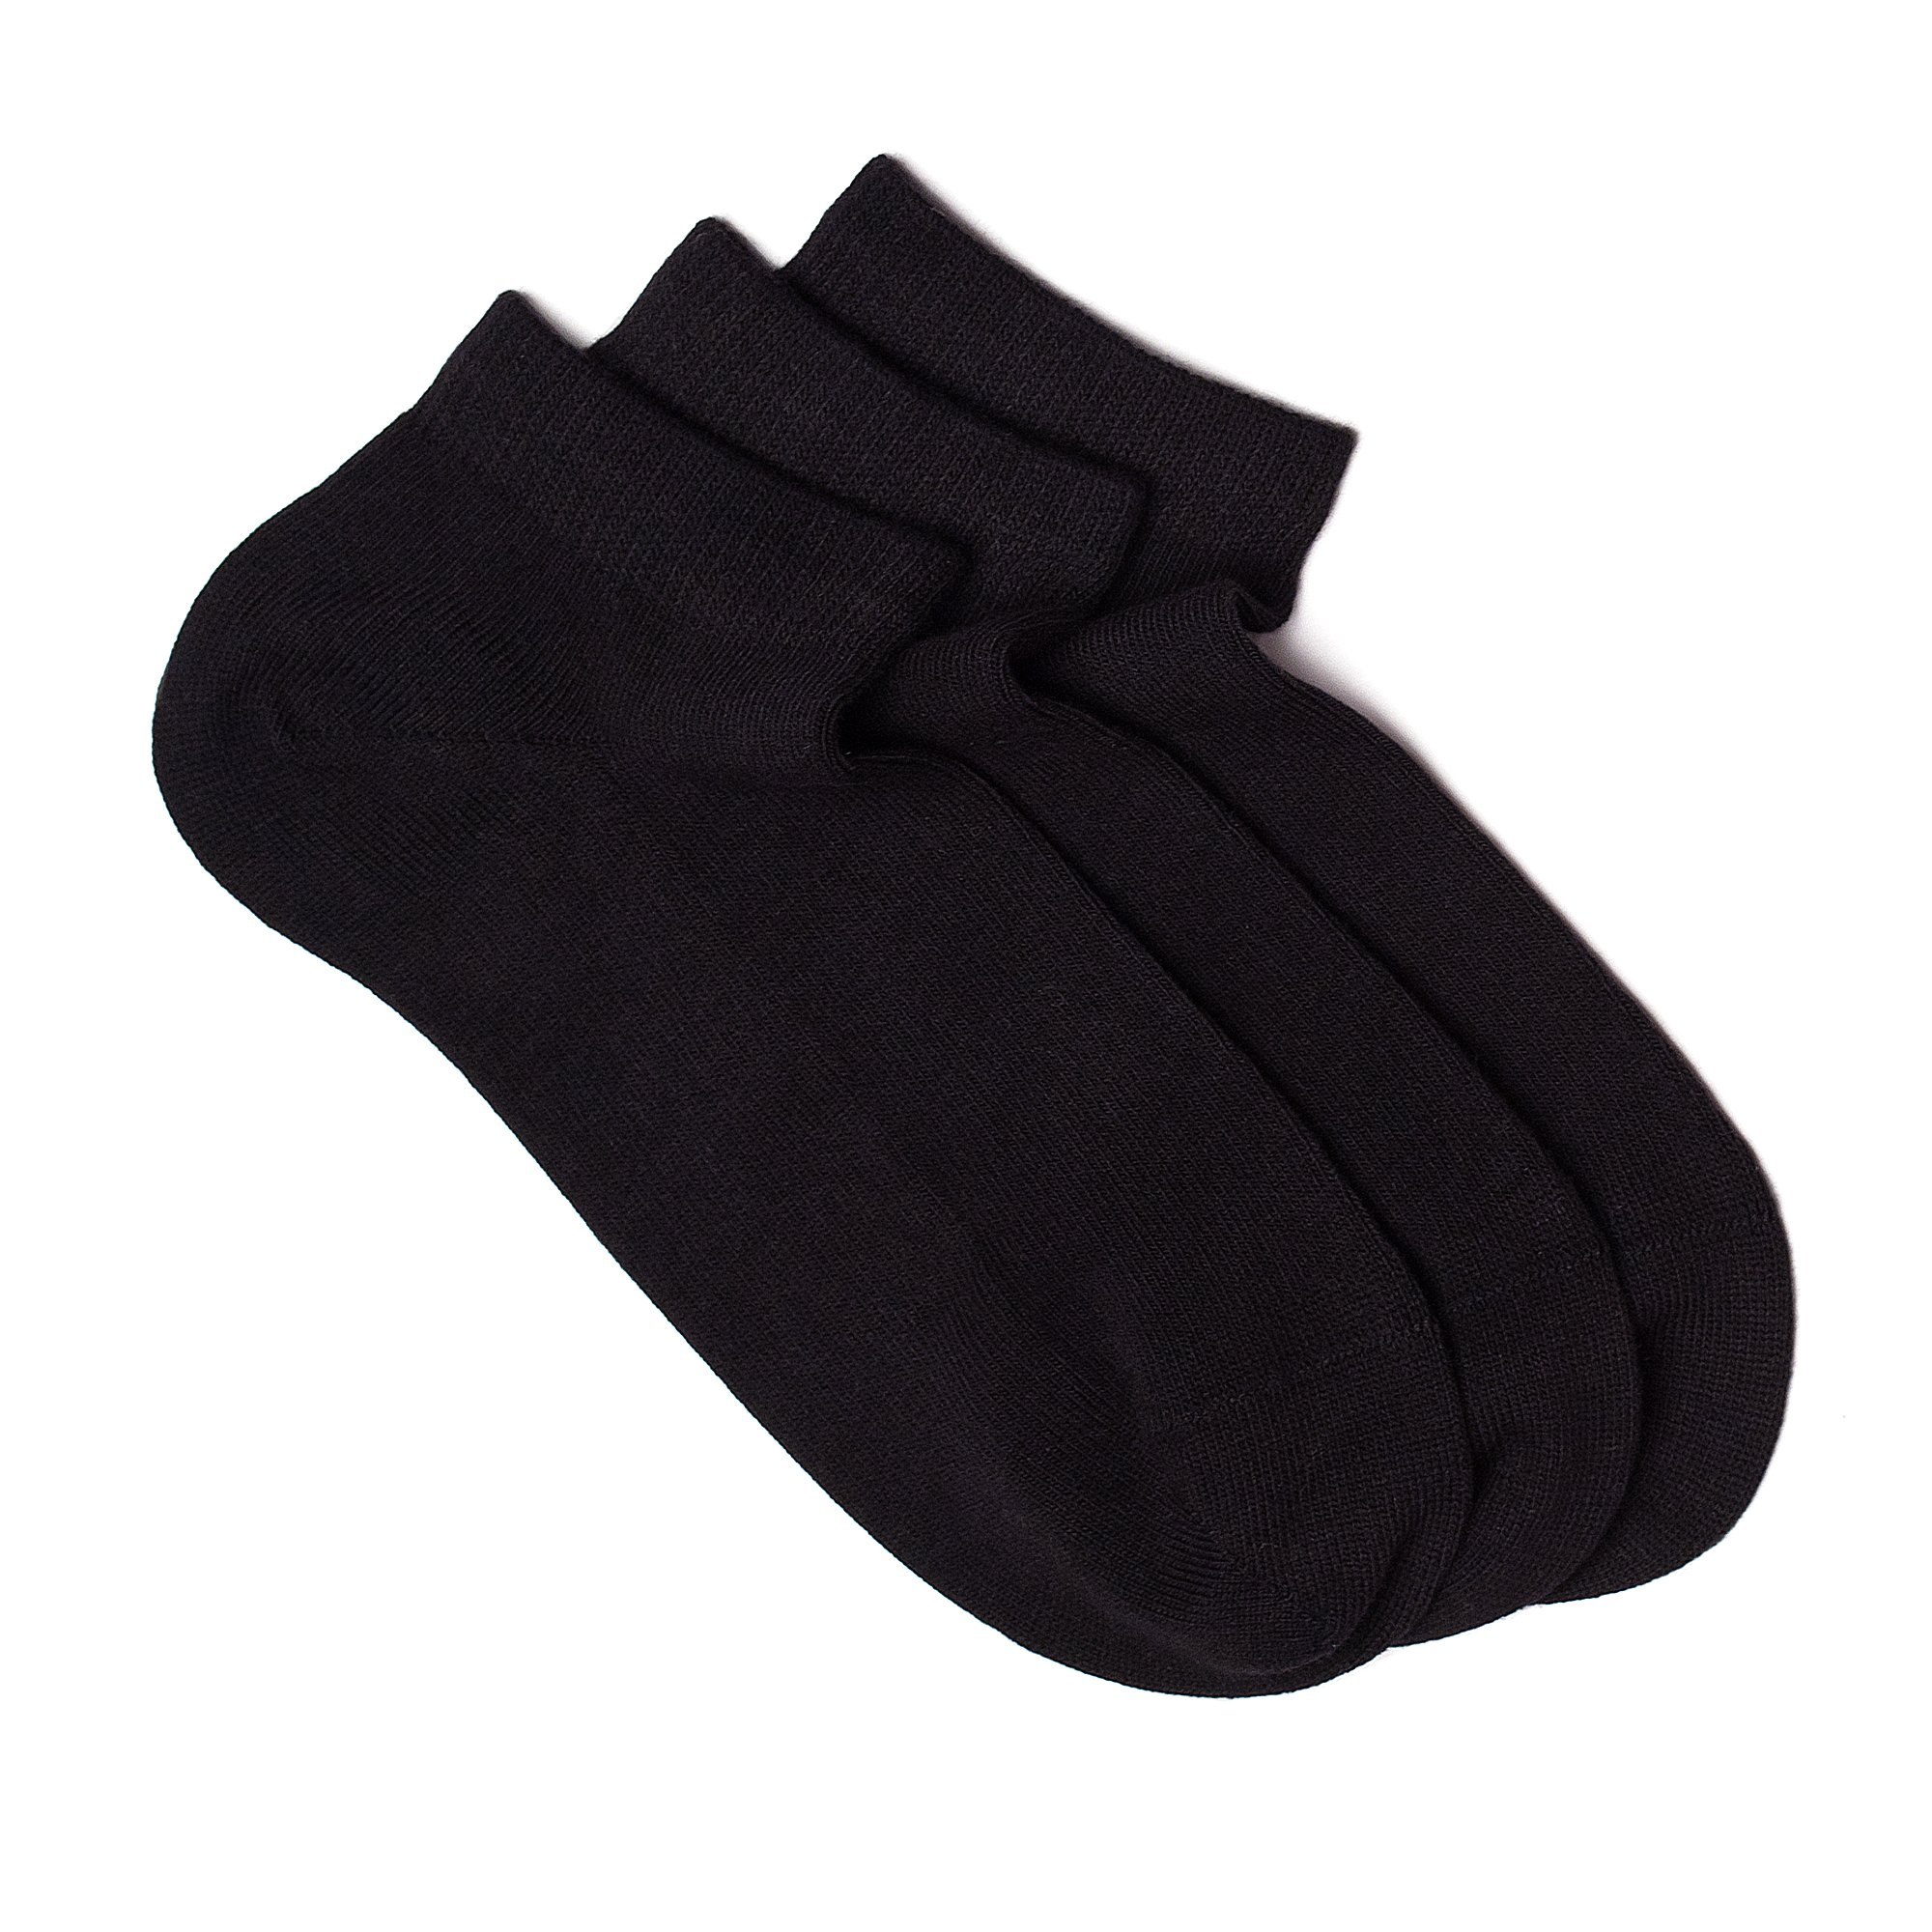 Women's Low Cut Socks, 3 Pairs Pack. Seamless Fit, Fine Combed Cotton, Reinforced Sole